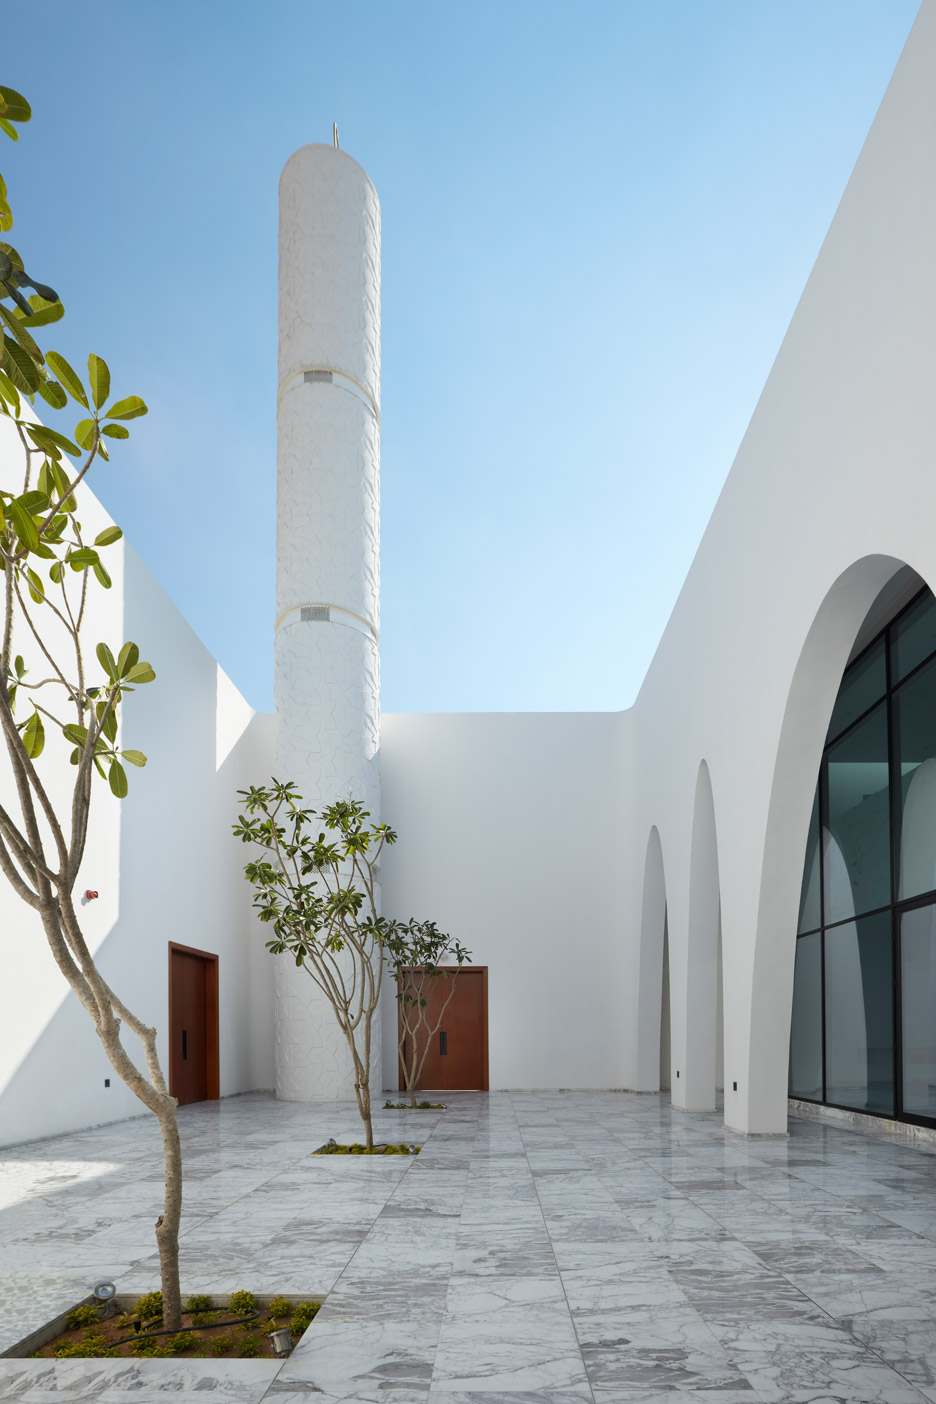 al-warqaa-mosque-ibda-design-worship-dubai-united-arab-emirates-_dezeen_936_11.jpg